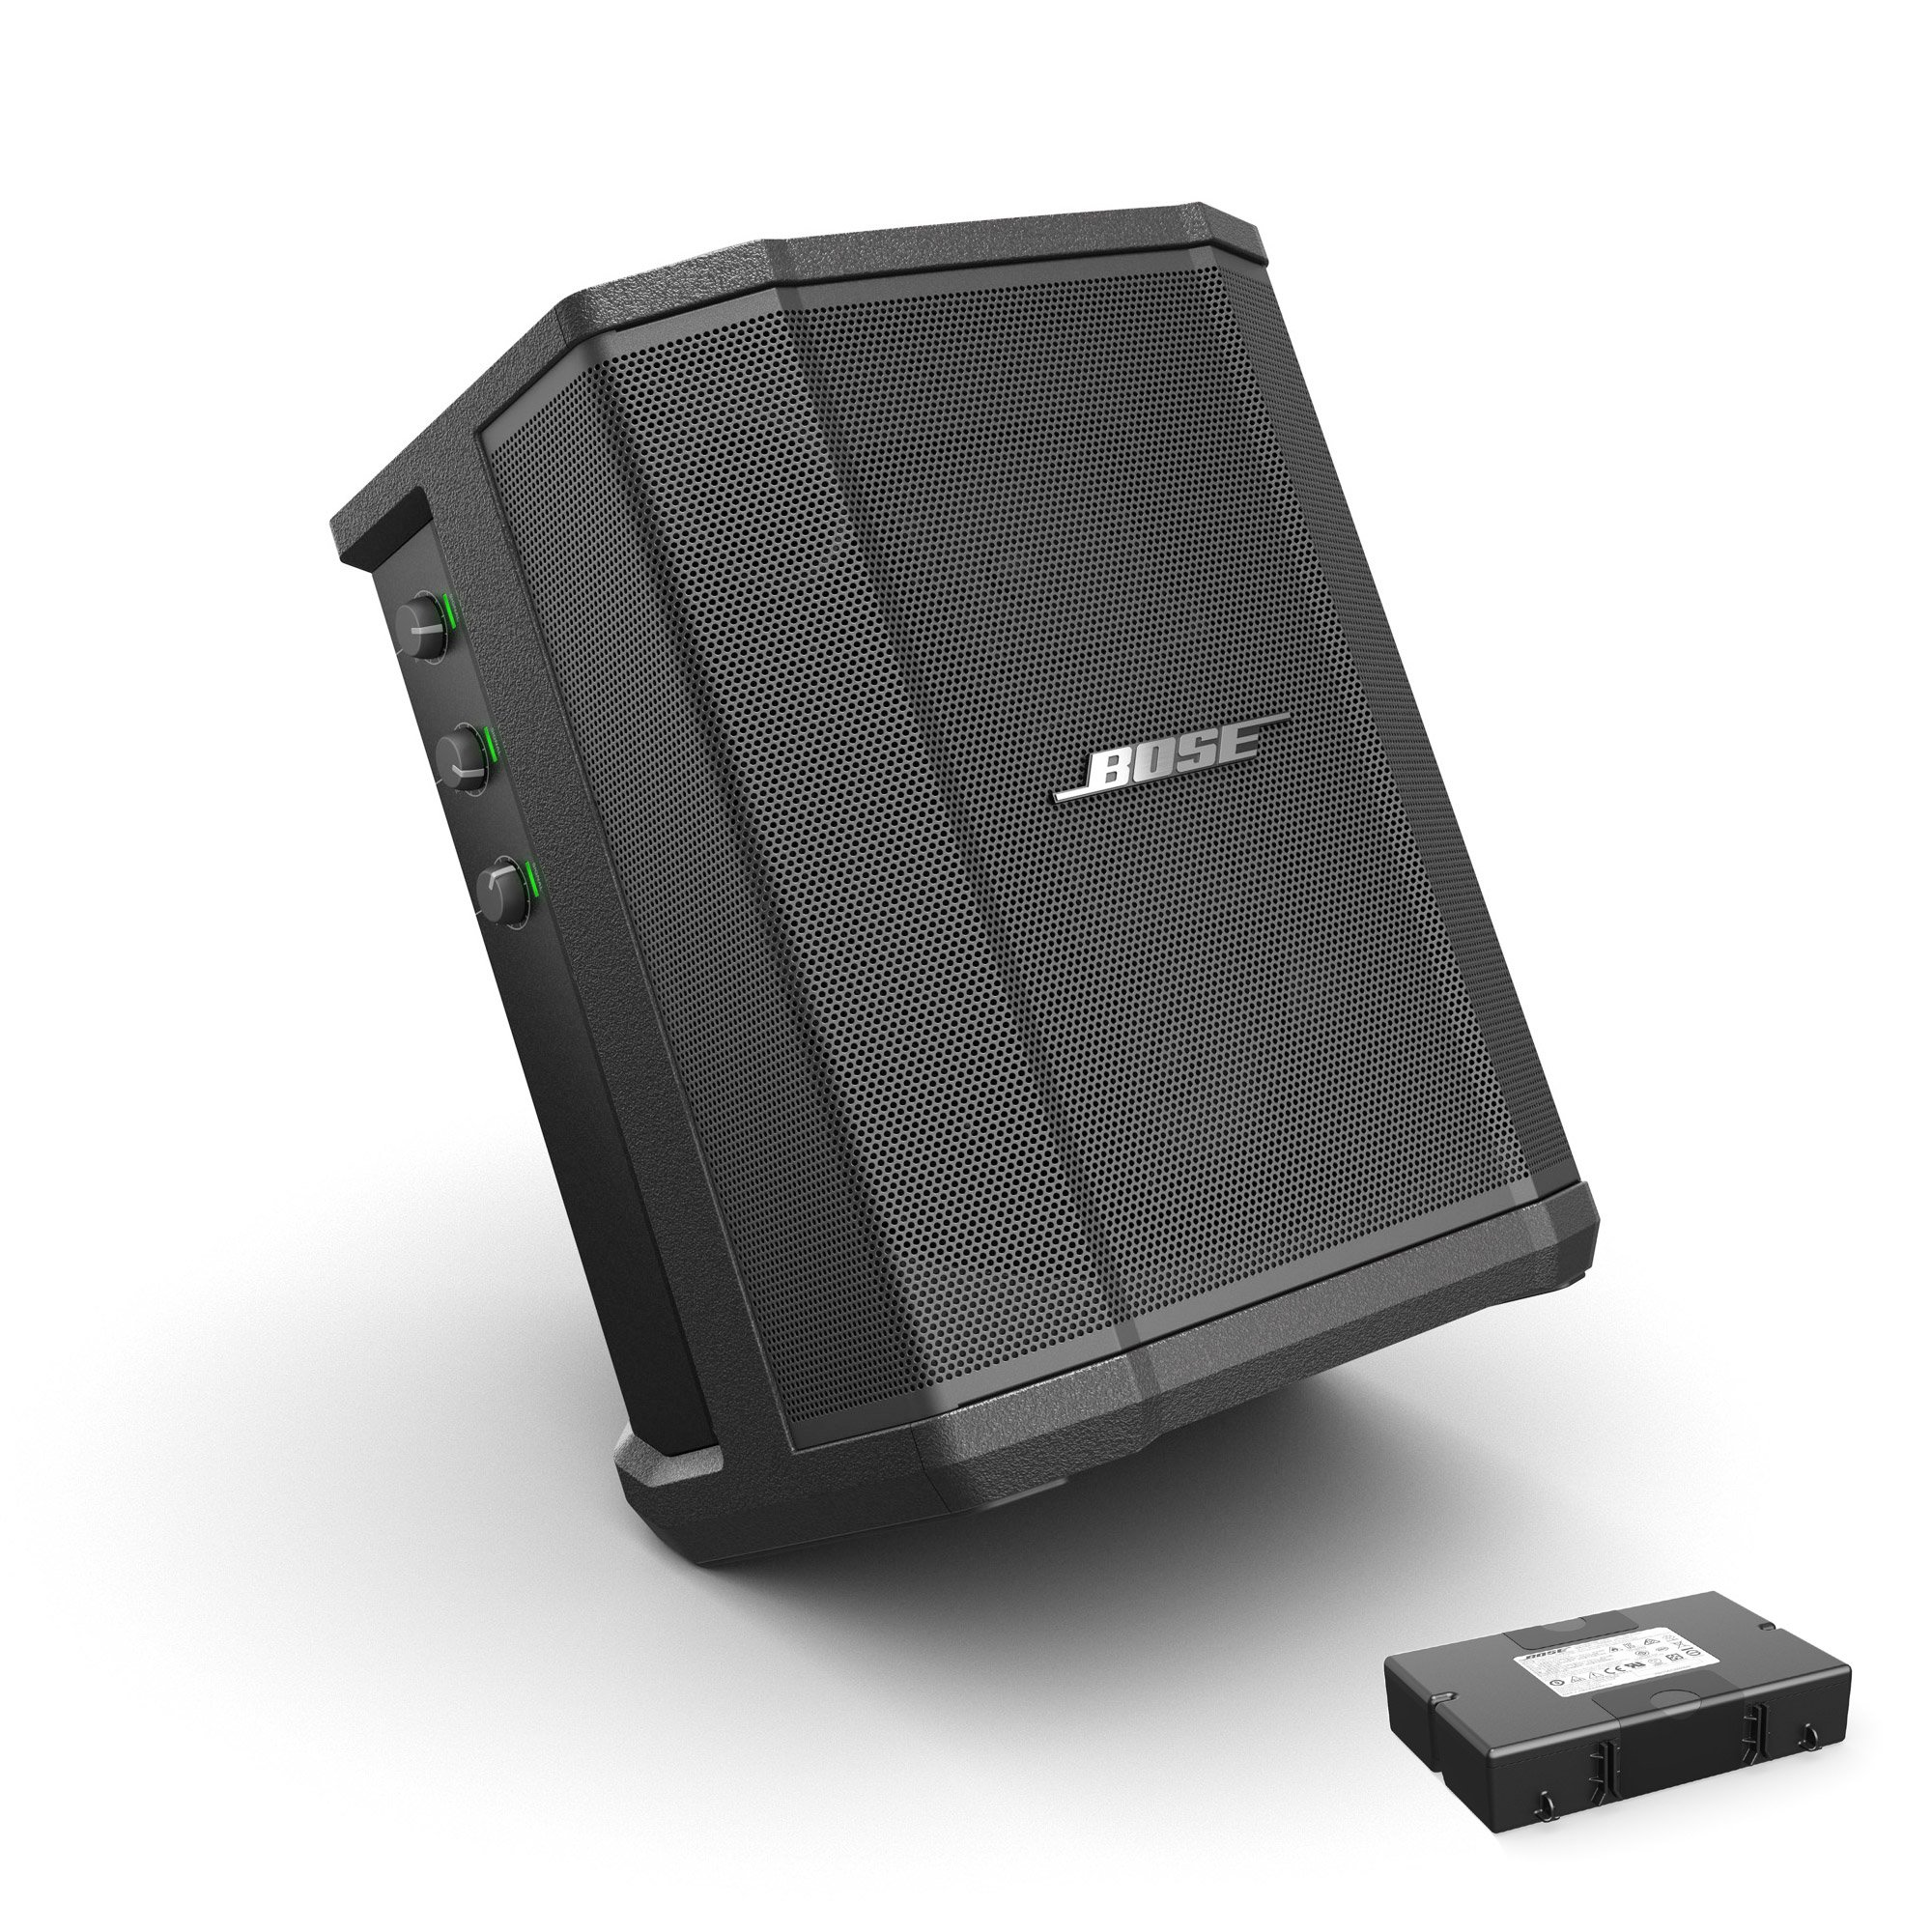 Bose S1 Pro Multi-Position PA System - With Bose Lithium-Ion Battery Pack by Bose